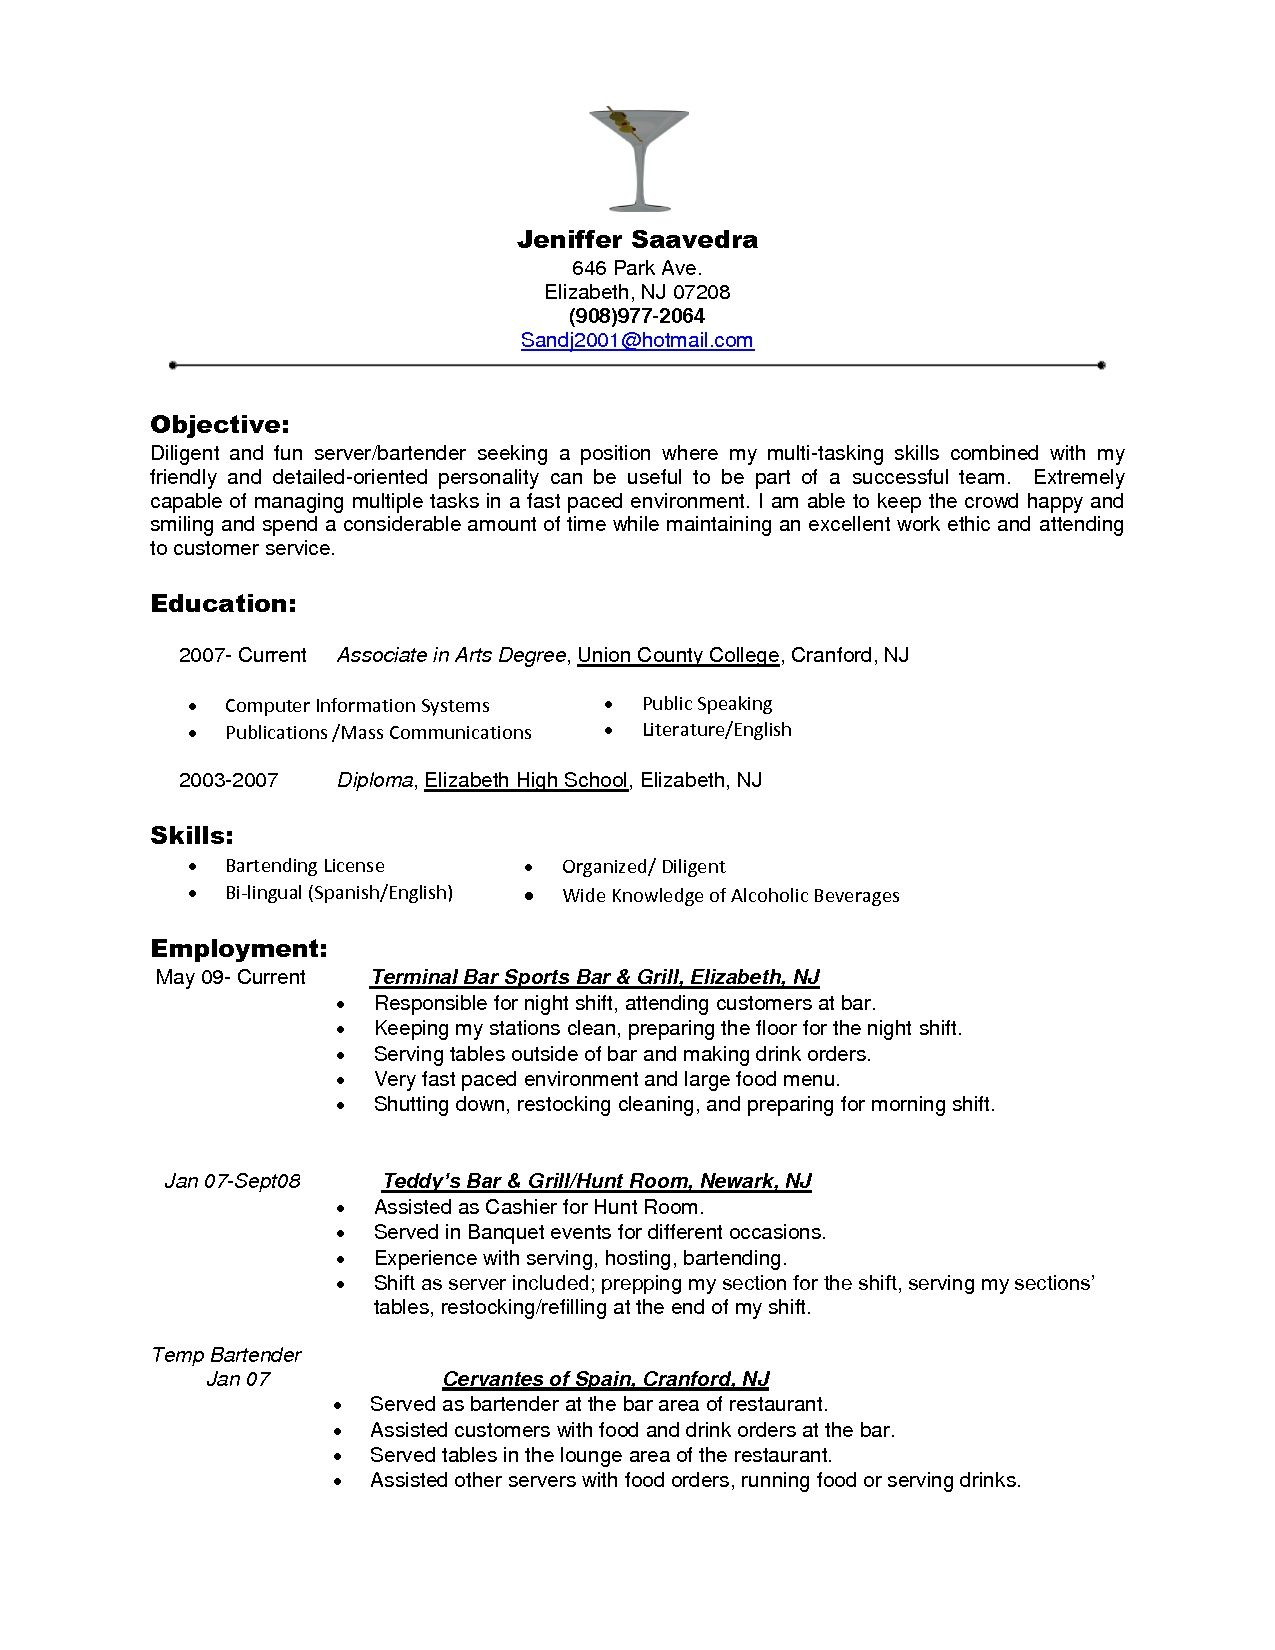 A Good Objective For Resume Bartender Objectives Resume  Bartender Objectives Resume Will